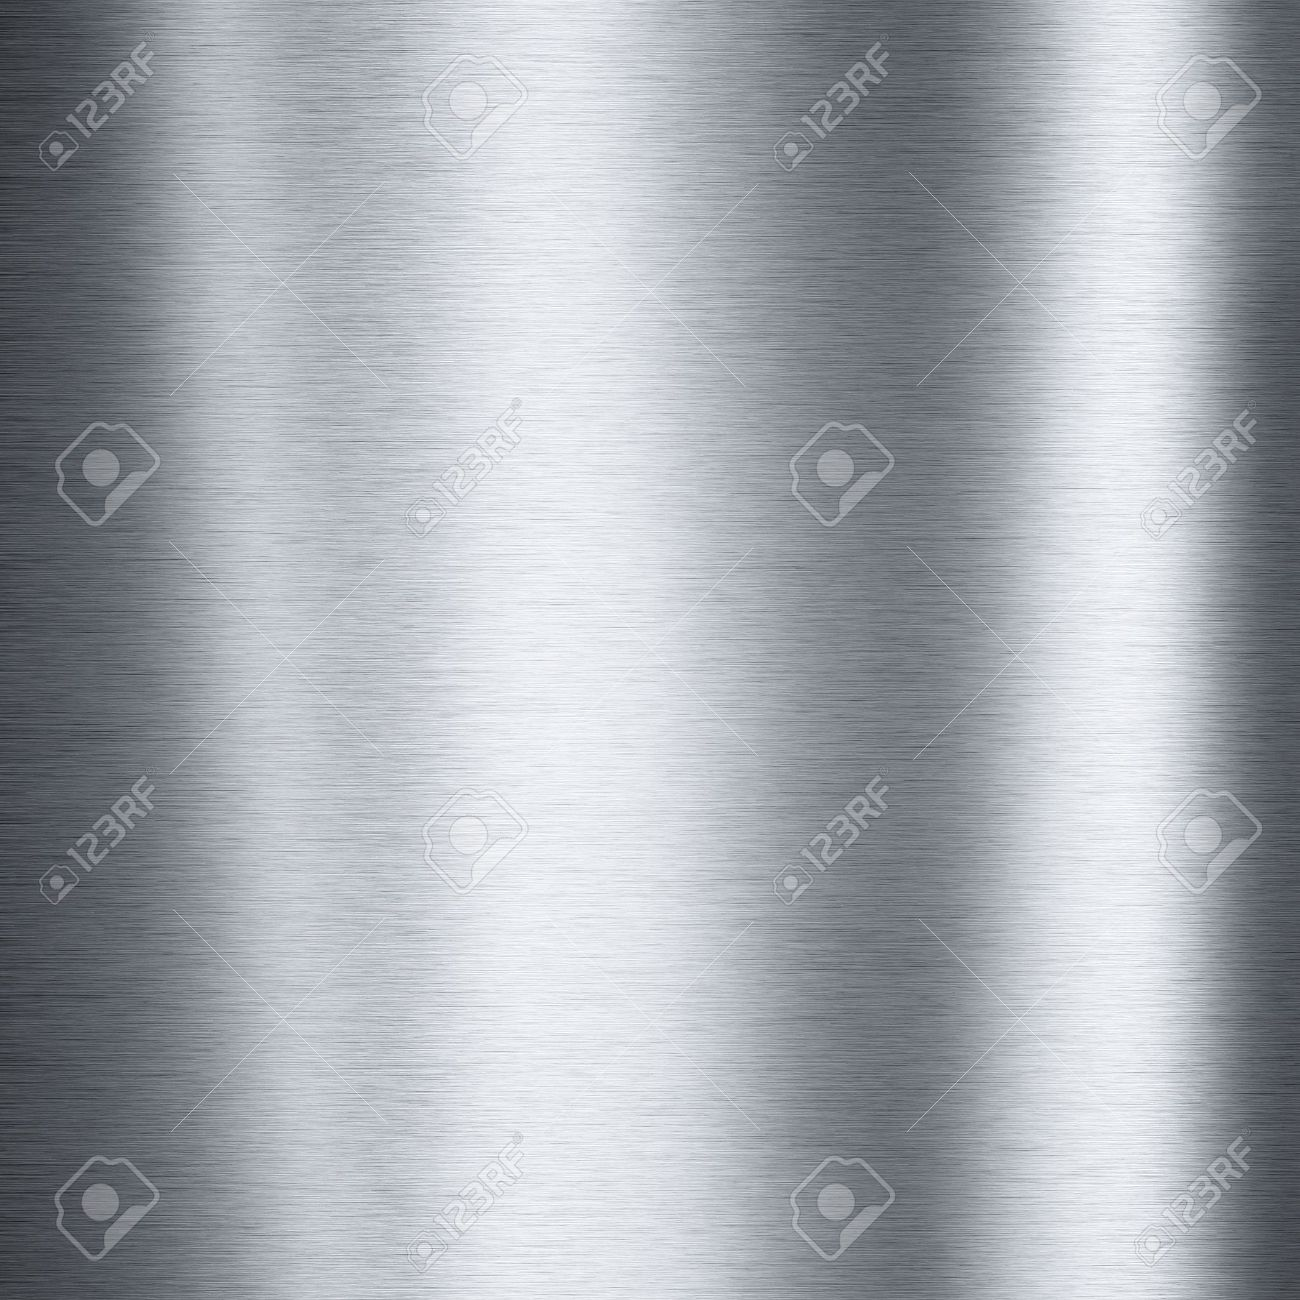 Brushed aluminum metallic plate useful for backgrounds Stock Photo - 8595318